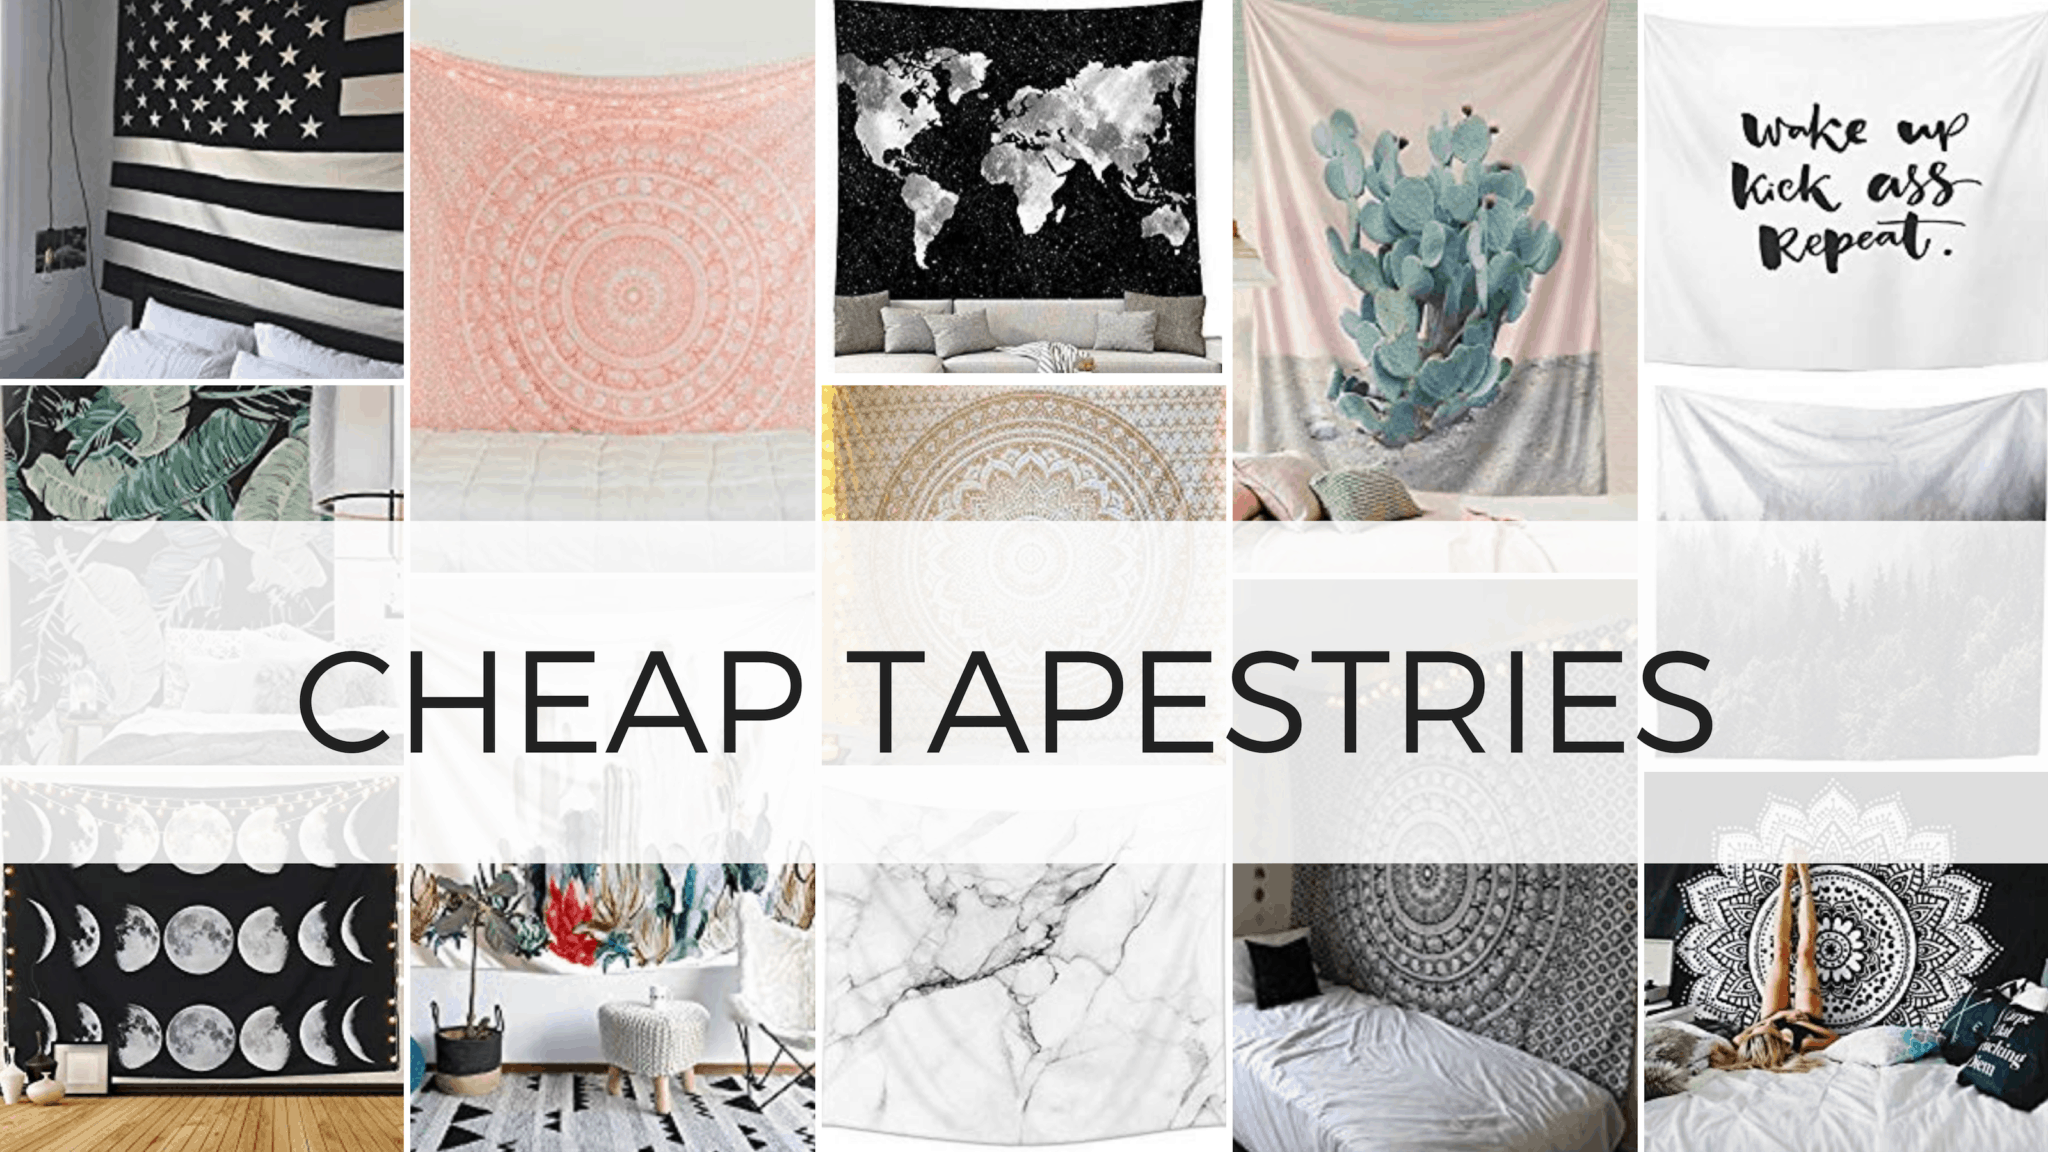 50 Most Popular Cheap Tapestries To Buy This Year By Sophia Lee